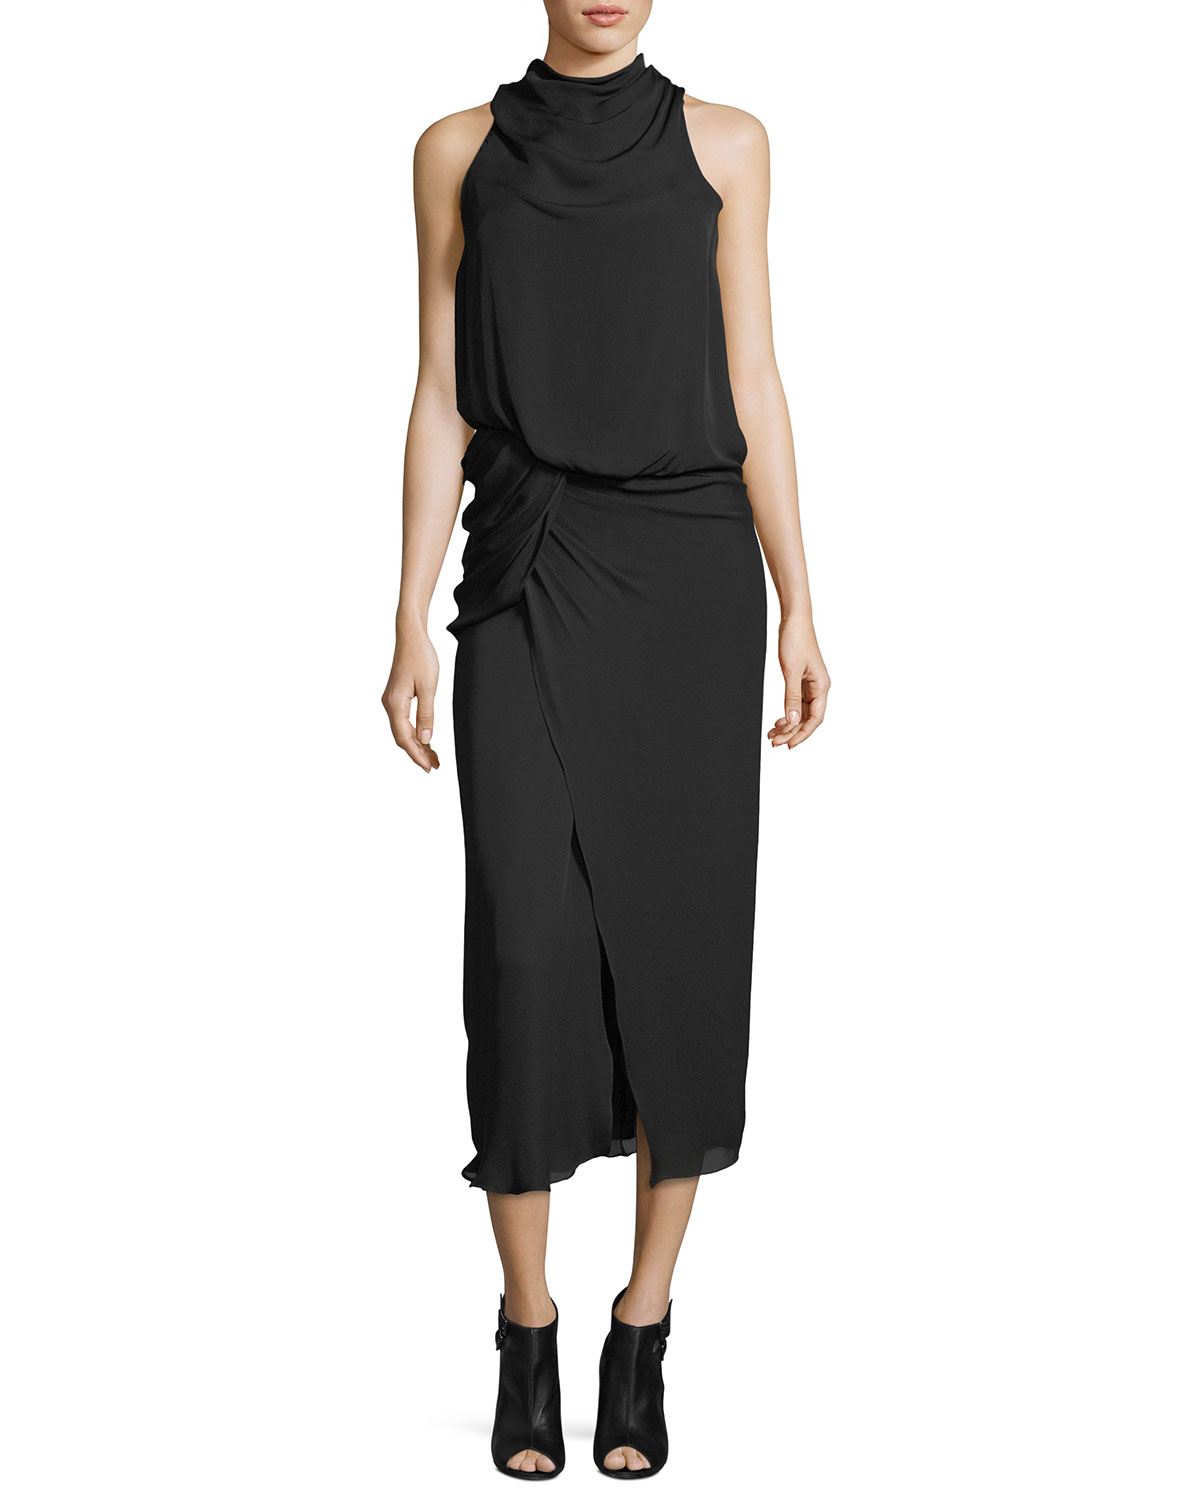 Draped Cowl Neck Dress: CAMILLA AND MARC Mila Cowl-Neck Draped Sleeveless Cocktail